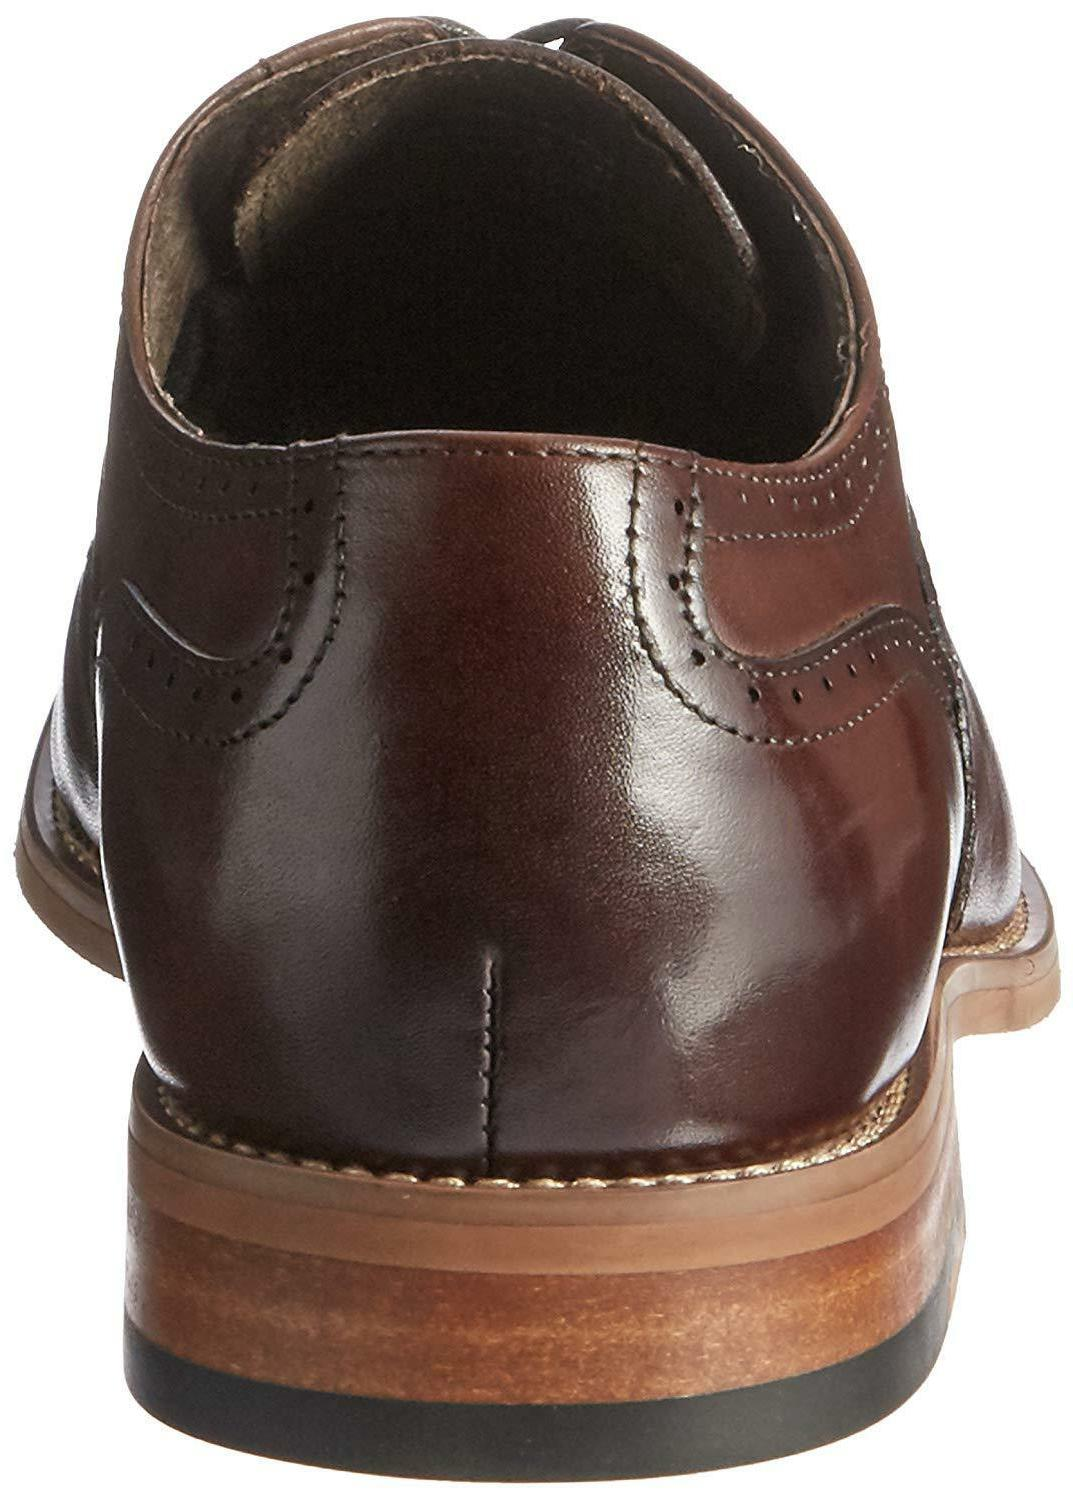 Stacy Adams Men's Dunbar Wingtip Lace-Up